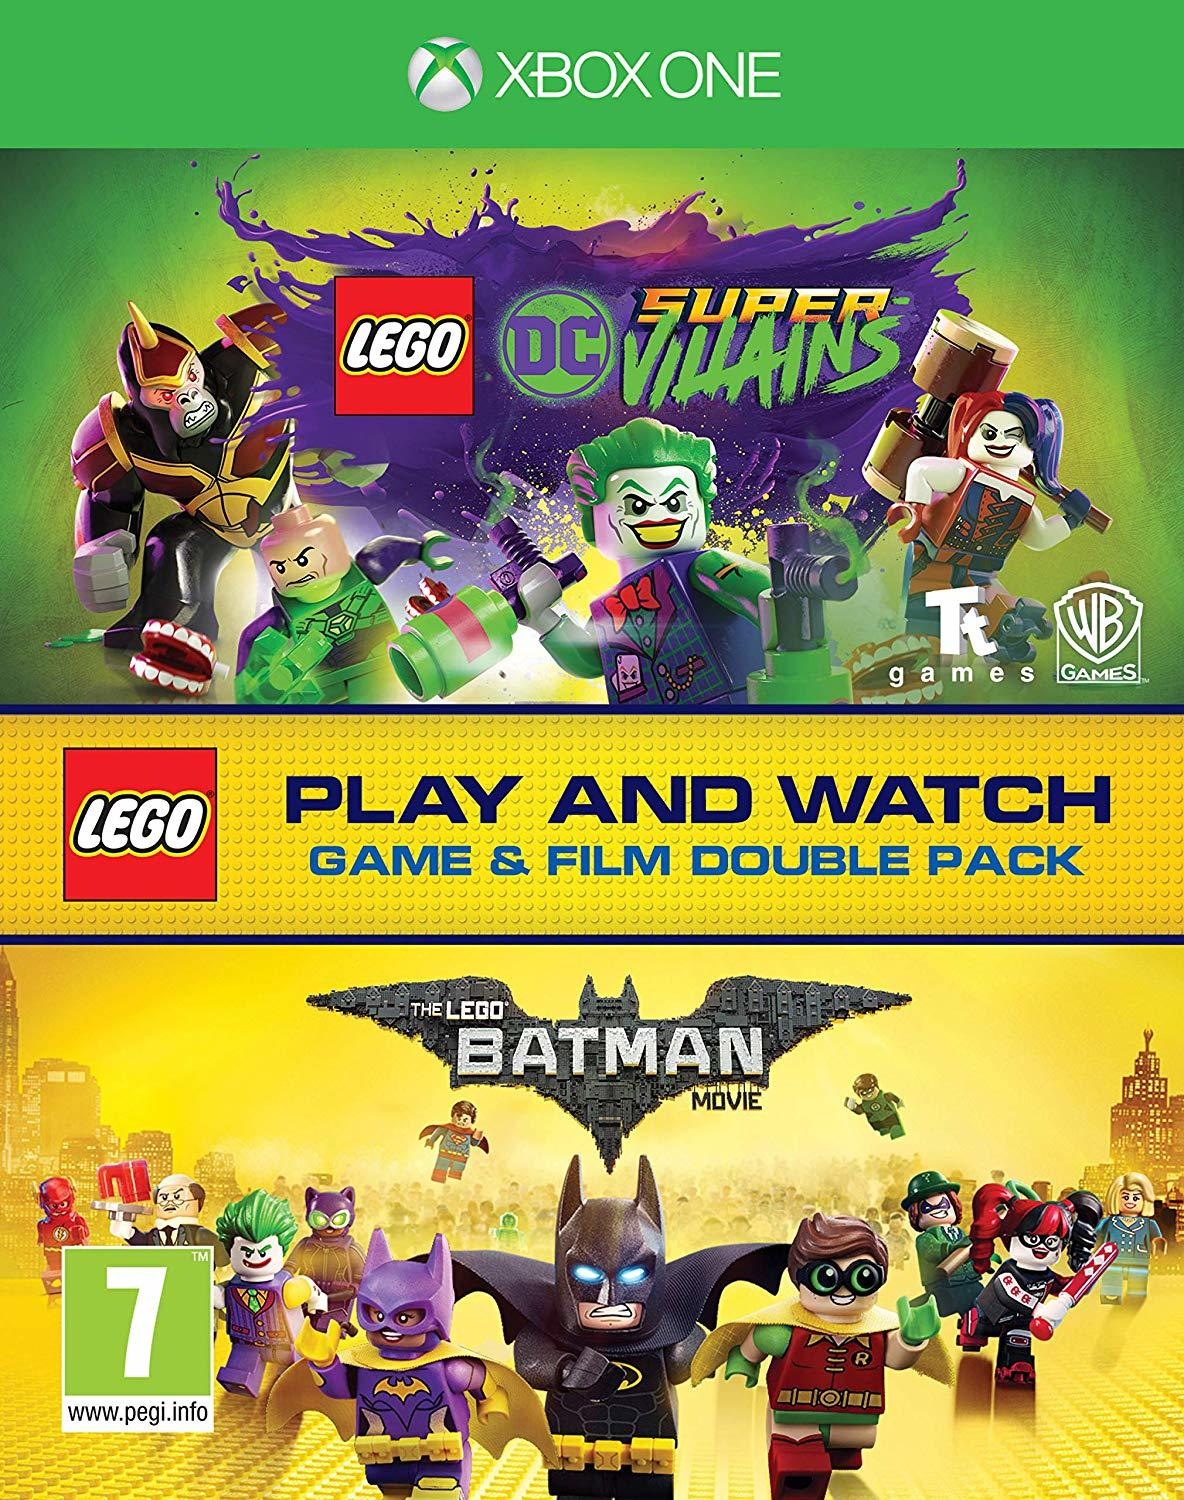 Lego DC Super-Villains Game & Film Double Pack - Xbox One